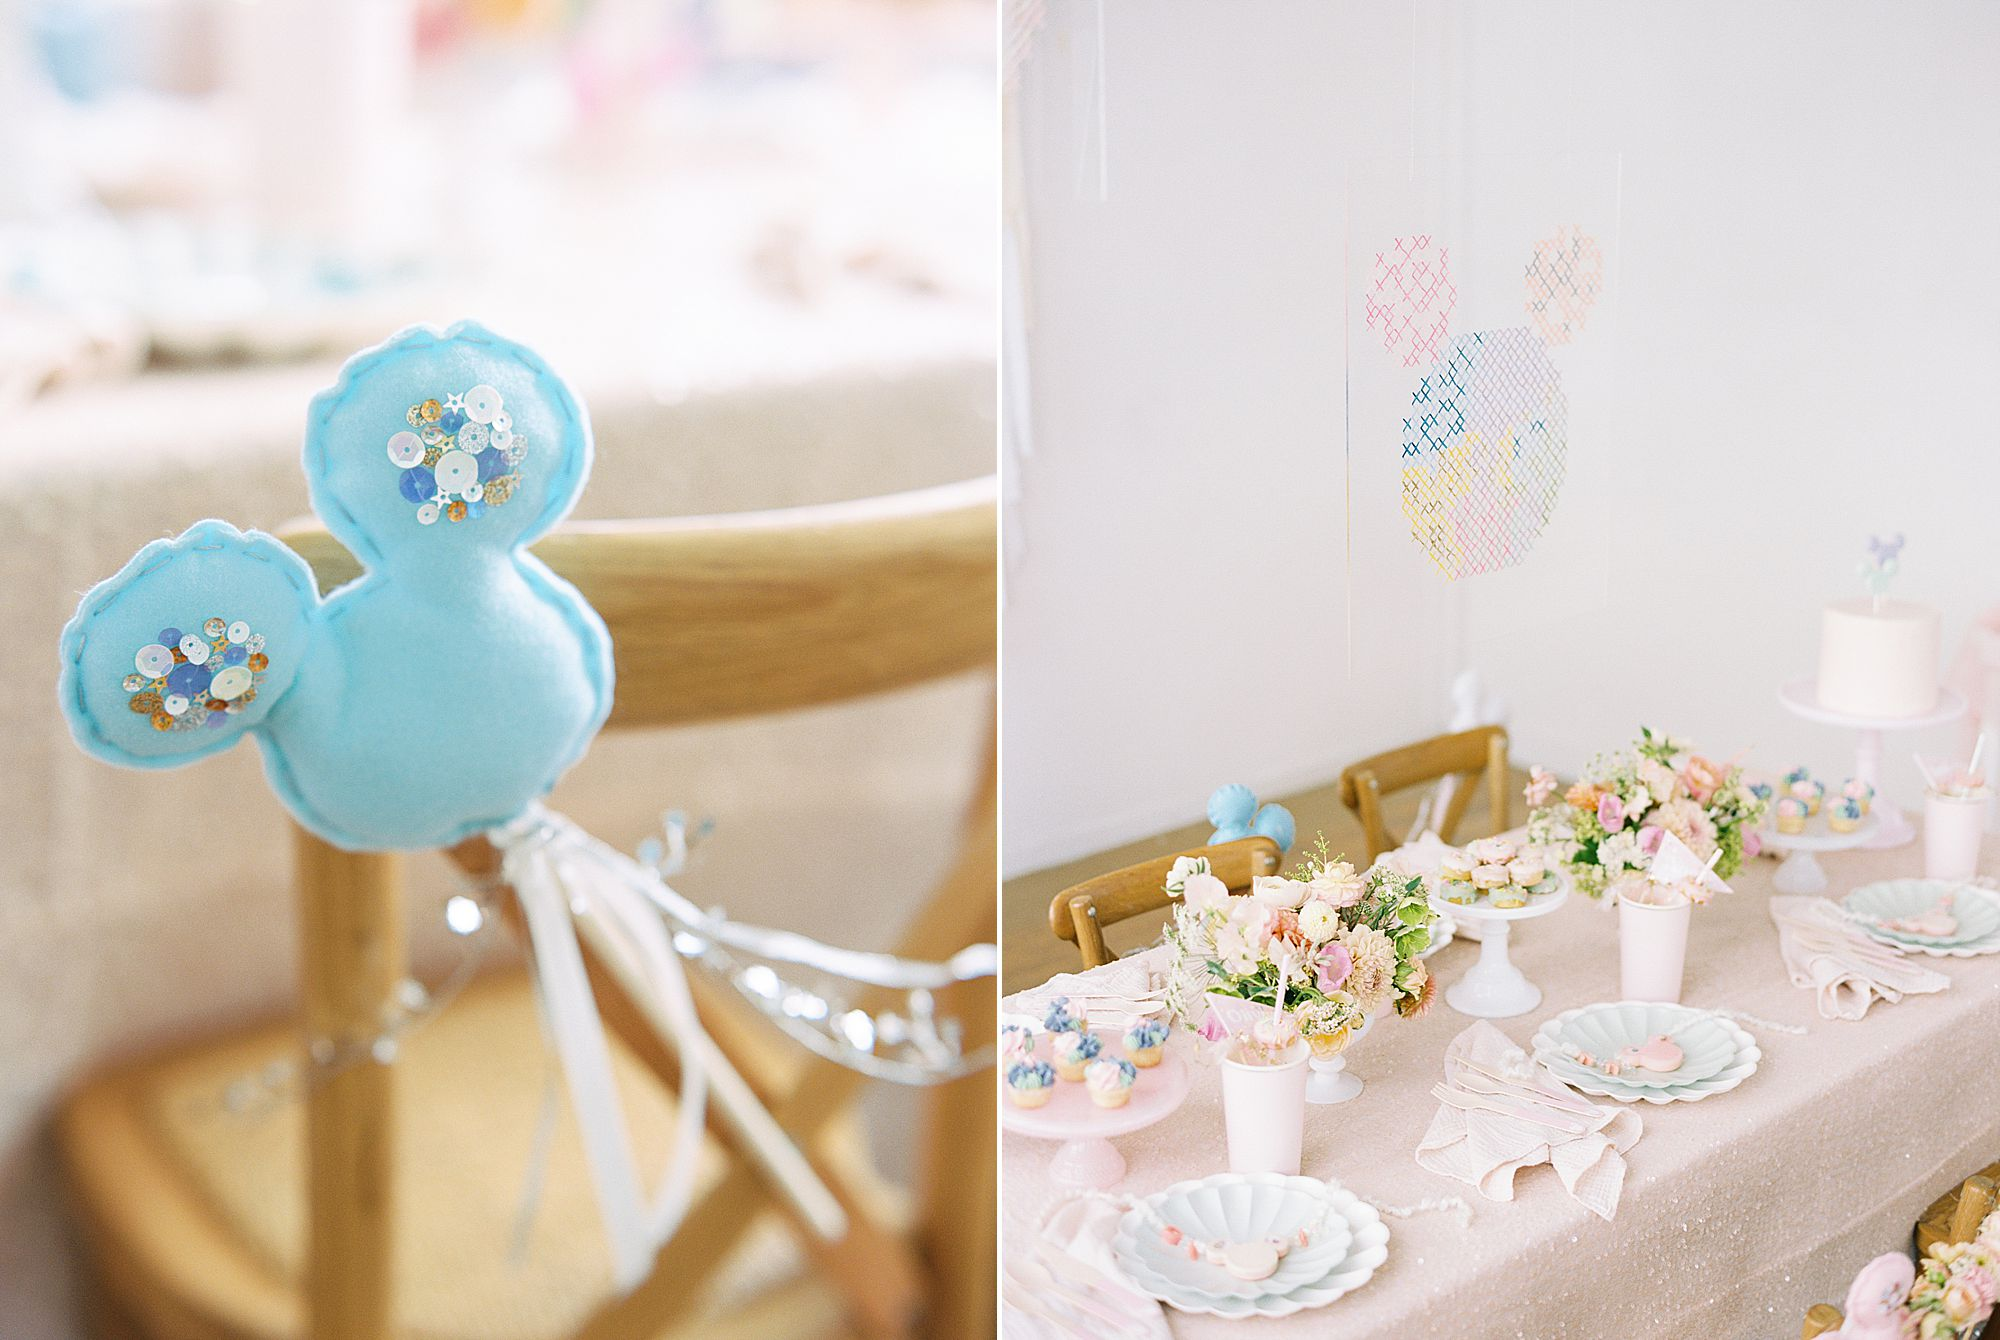 Vintage Disney Birthday Party for Princess Nora's Fourth Birthday - Featured on 100 Layer Cake - Ashley Baumgartner - Parker Grace Events_0016.jpg